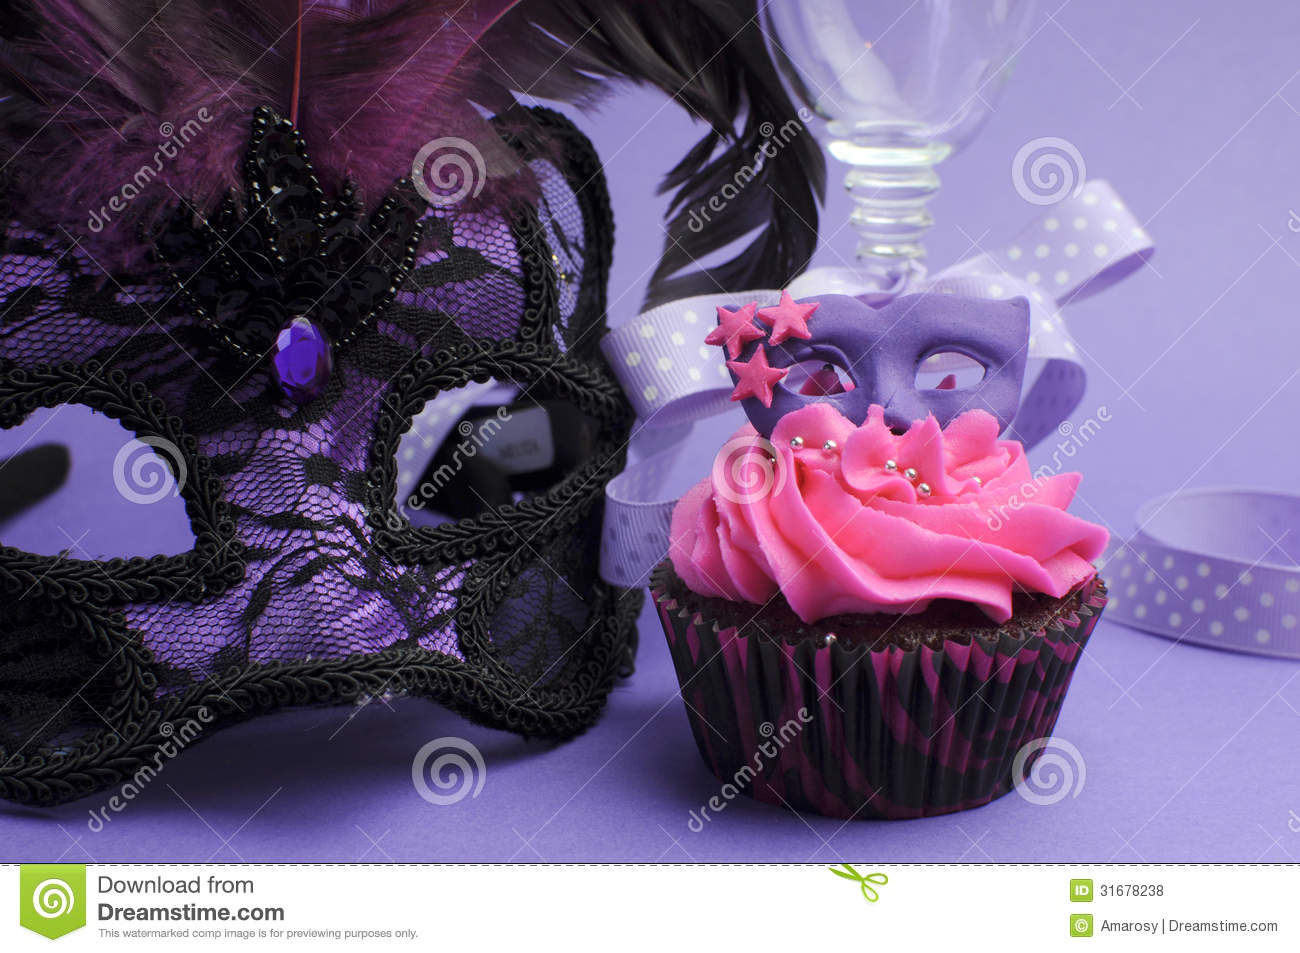 Purple Masquerade Party Decorations - Close Up Stock Photo ...